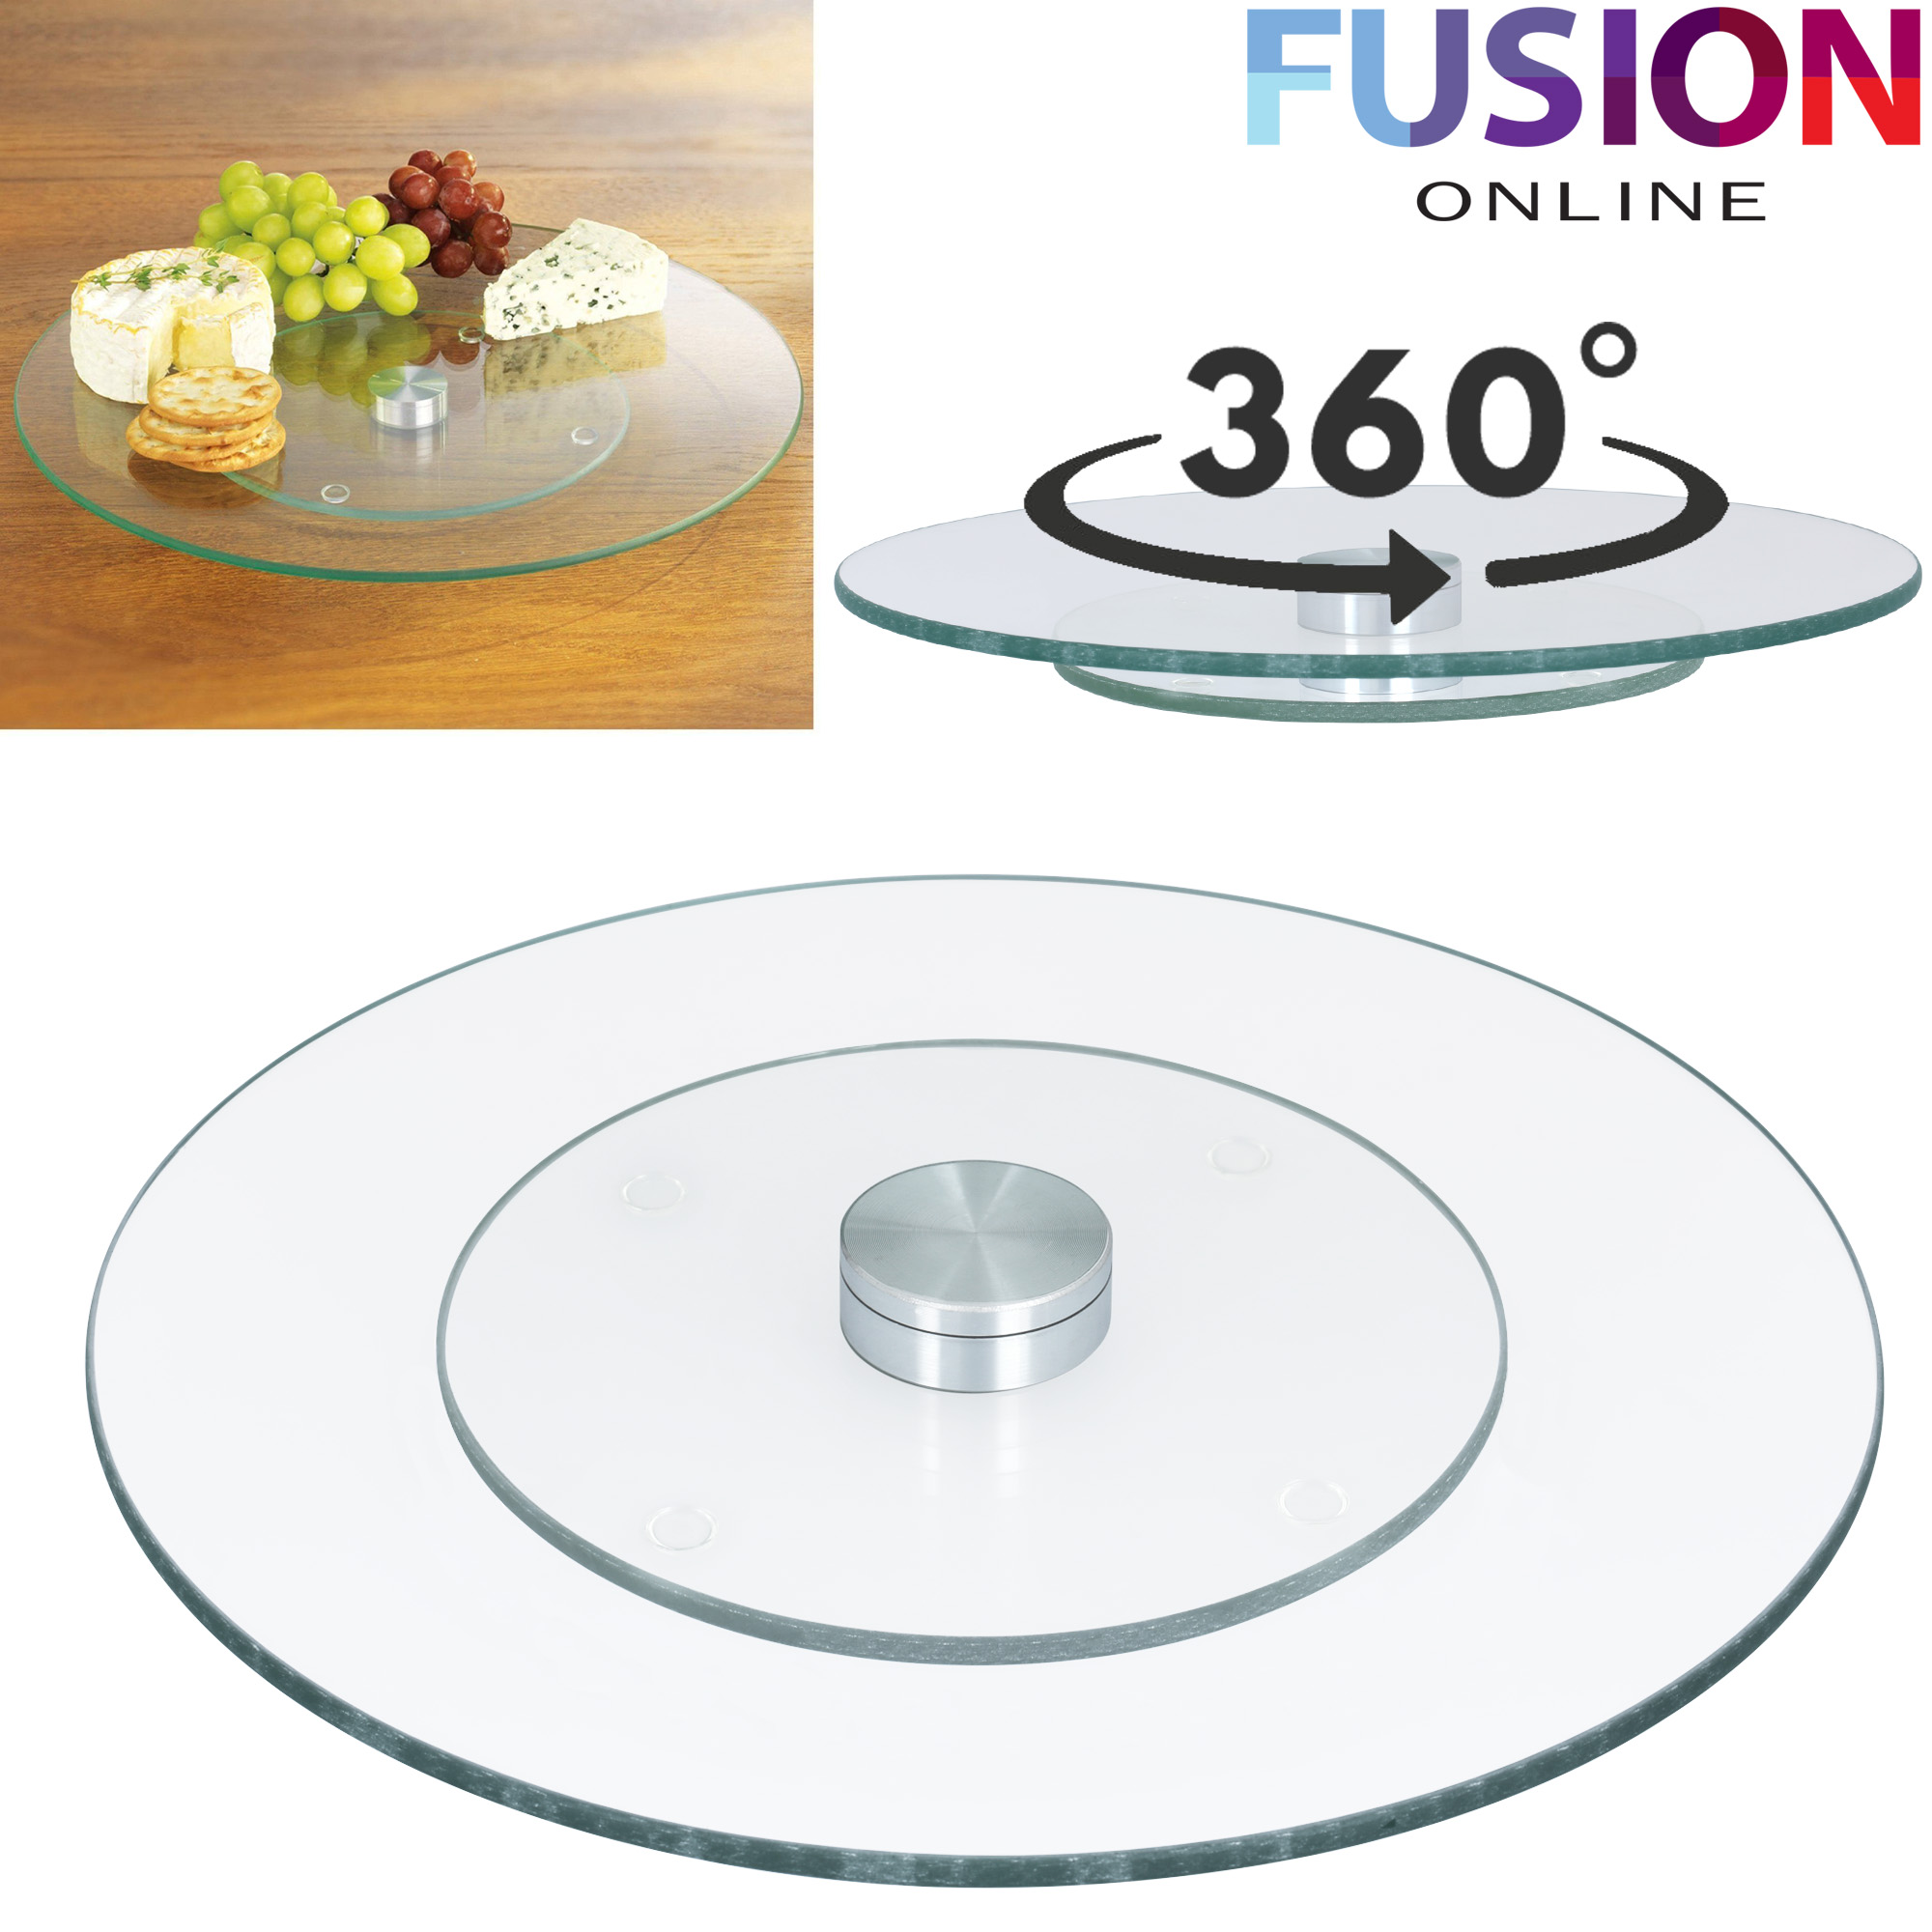 Dining Table Lazy Susan Turntable Images Dining Table Ideas : Lazy Susan glass main from sorahana.info size 2000 x 2000 jpeg 451kB